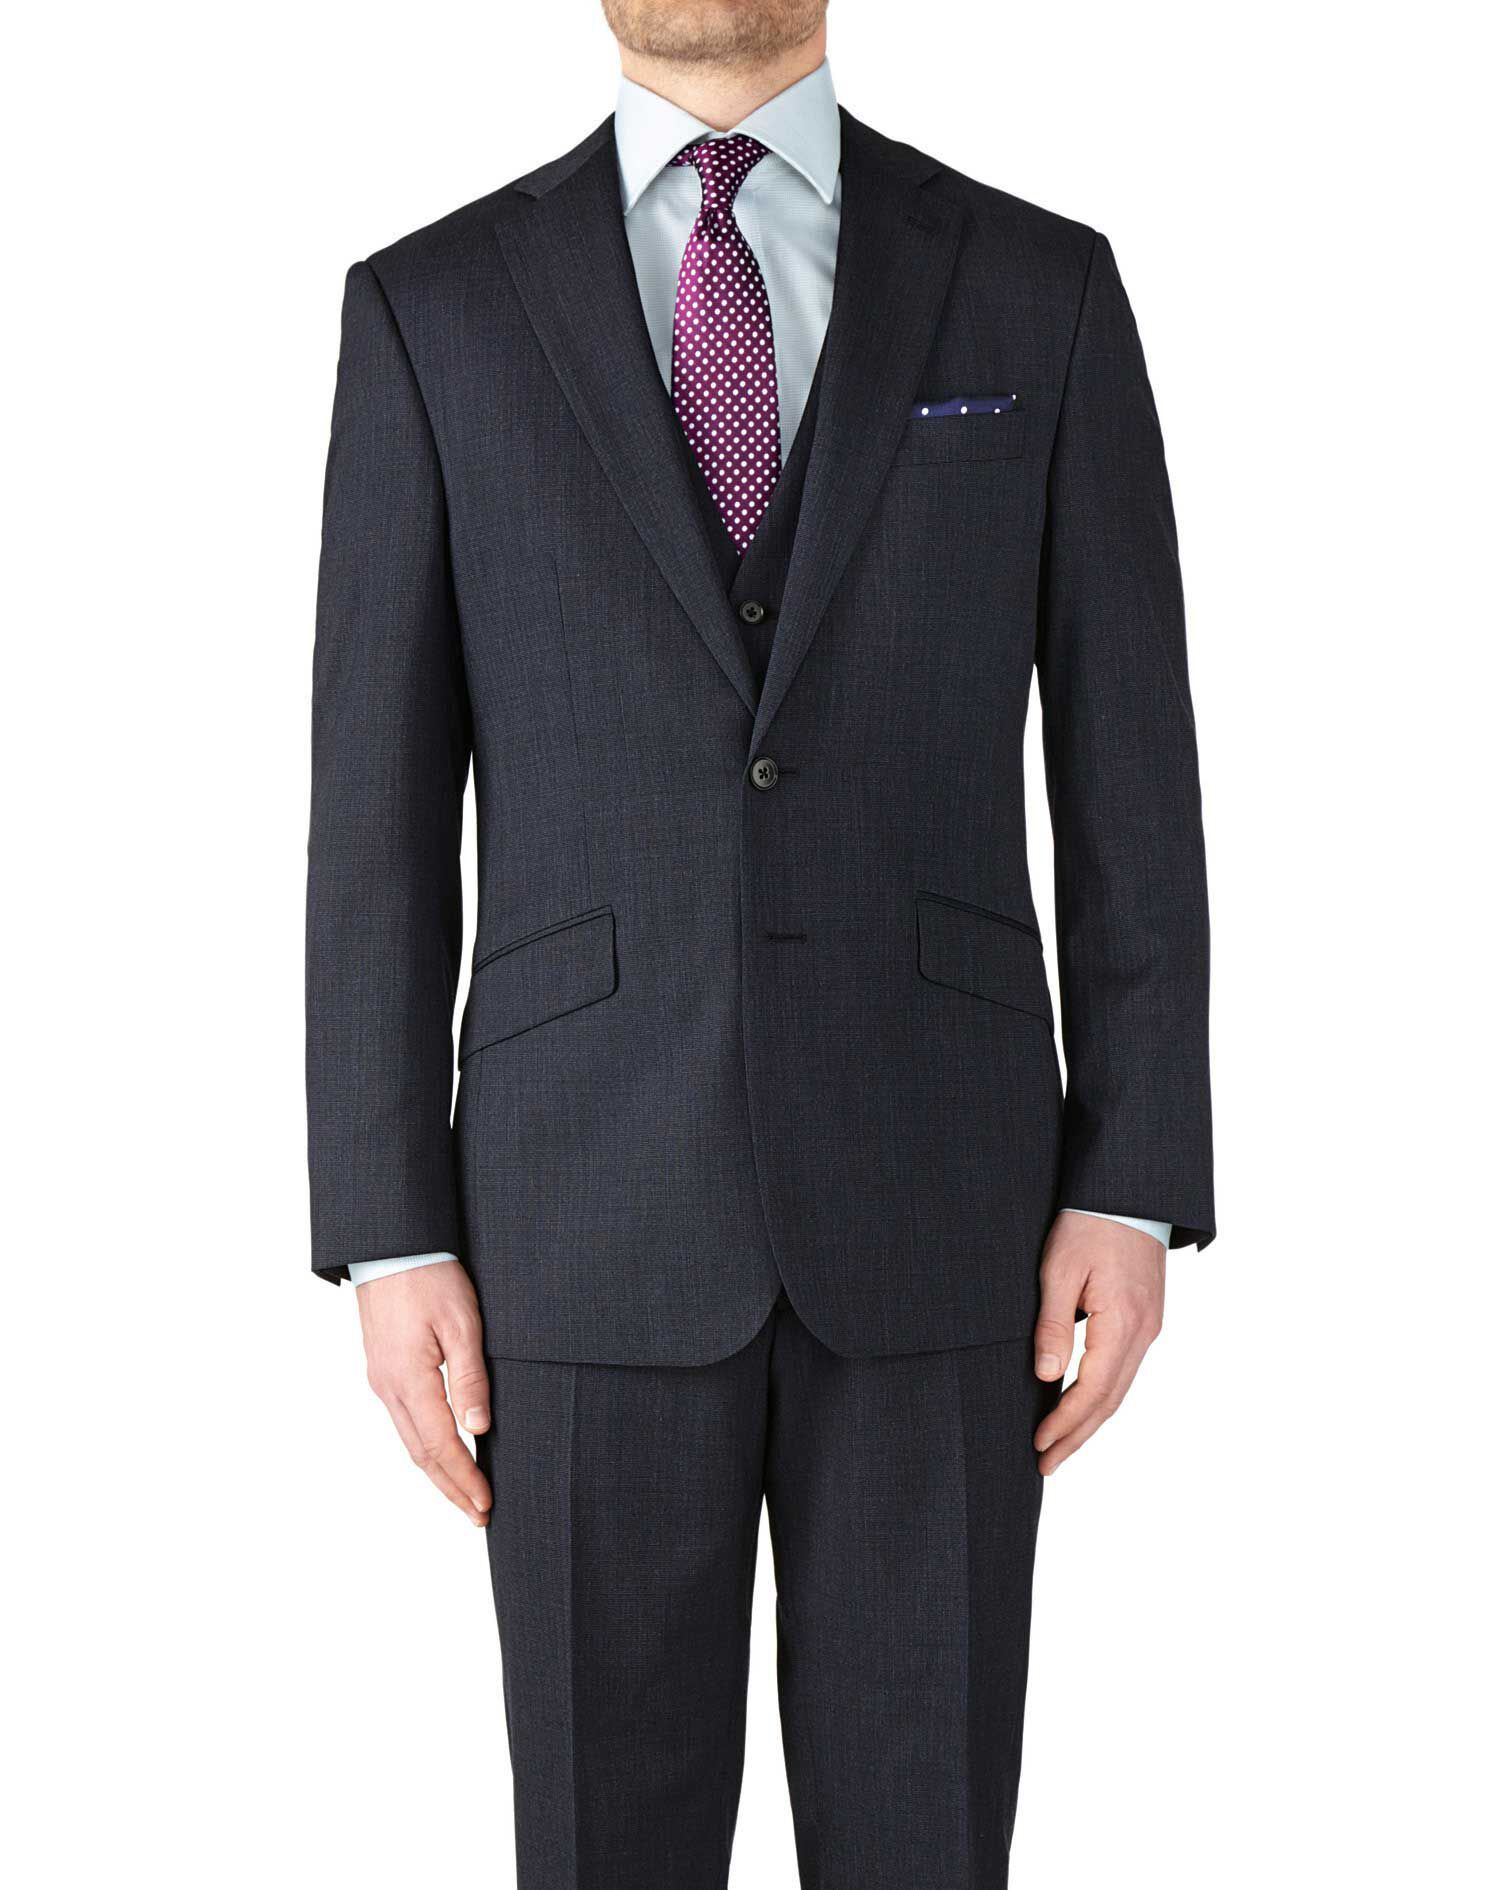 Navy Slim Fit End-On-End Business Suit Wool Jacket Size 48 Long by Charles Tyrwhitt